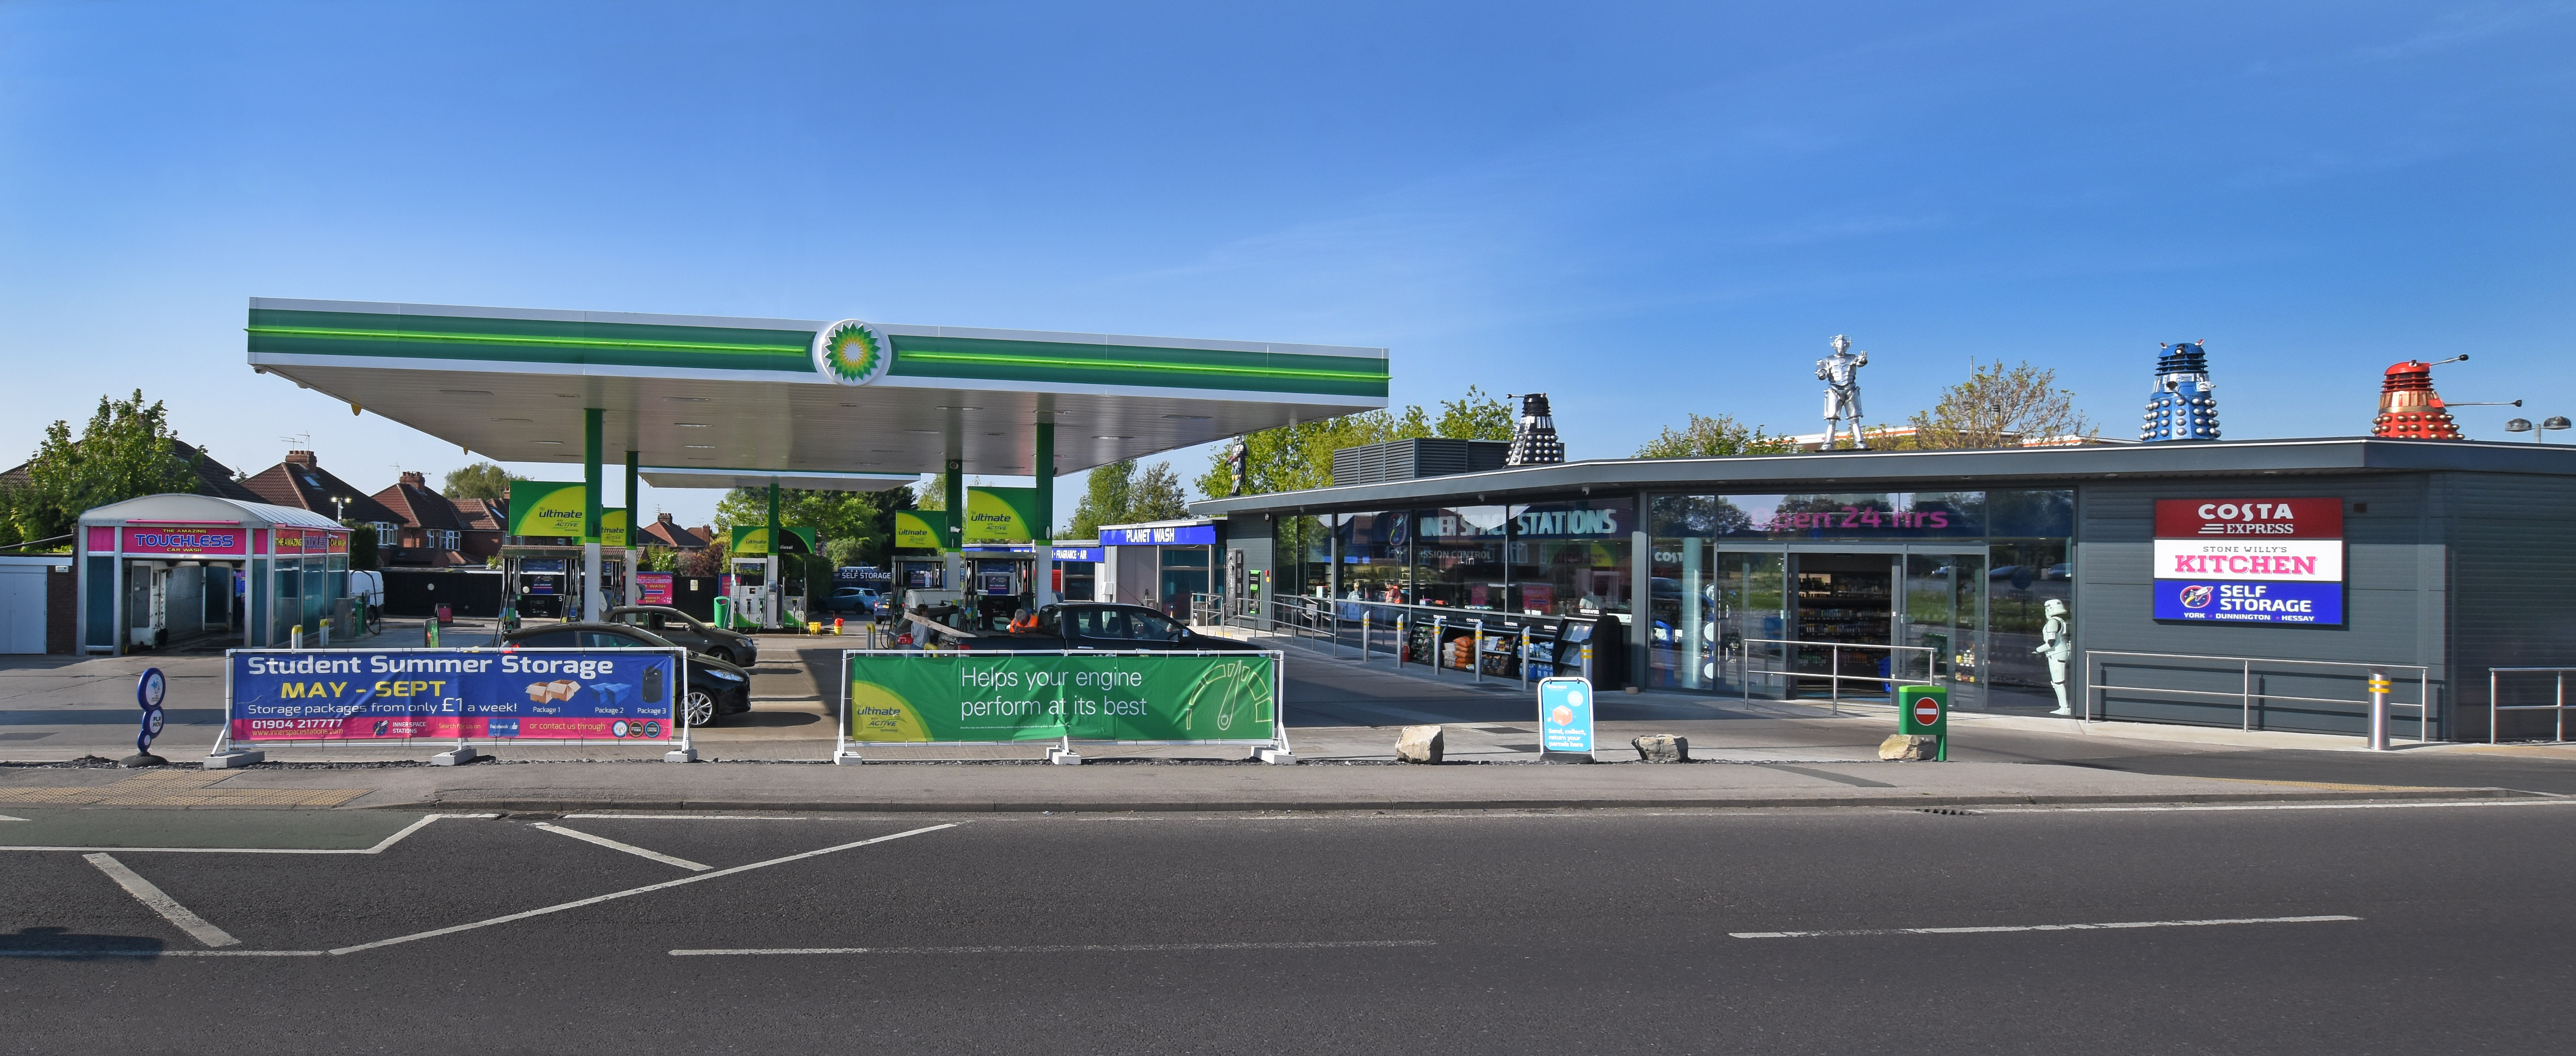 Hull Road Service Station